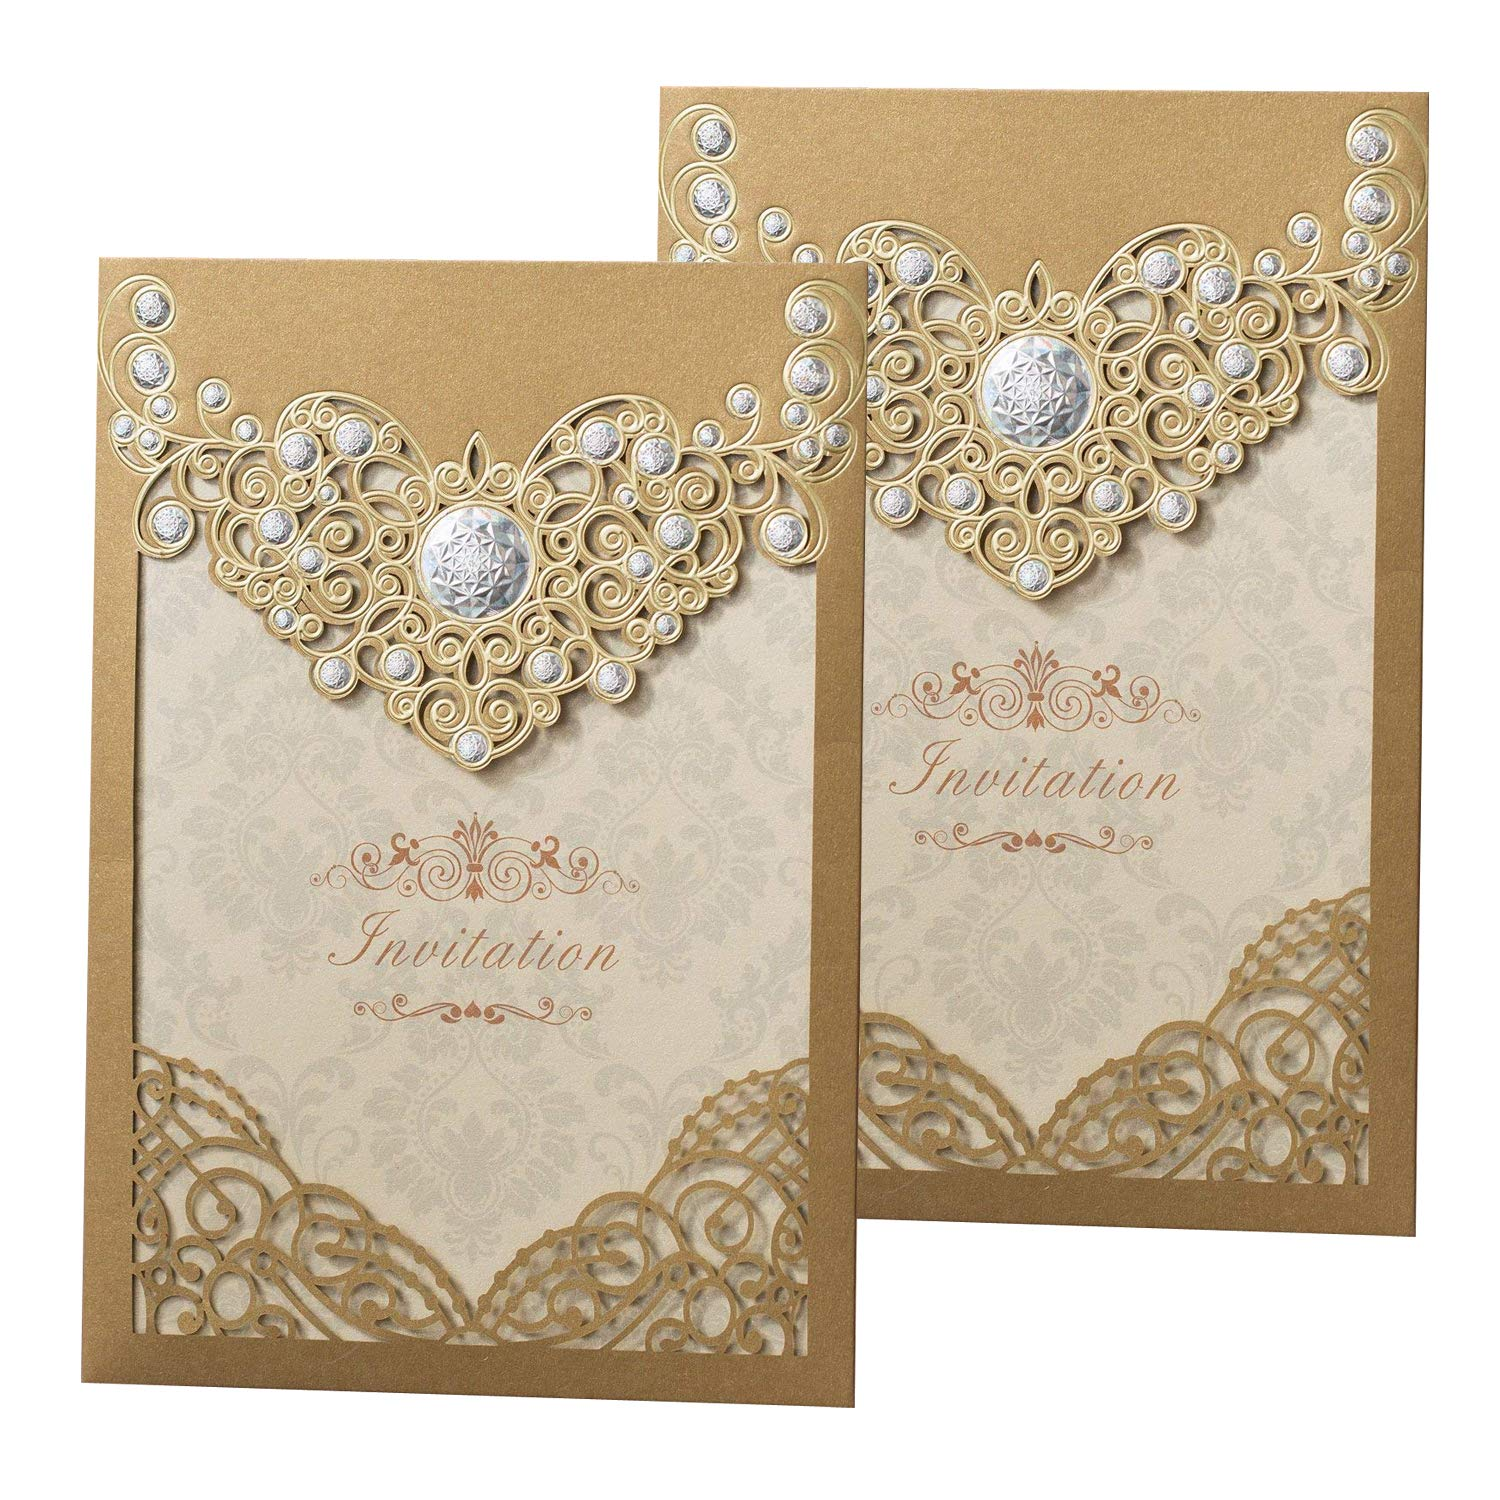 Wedding Invition Cards.50pcs Laser Cut Bronzing Wedding Invitation Cards Hollow Favors Invitation Cardstock For Engagement